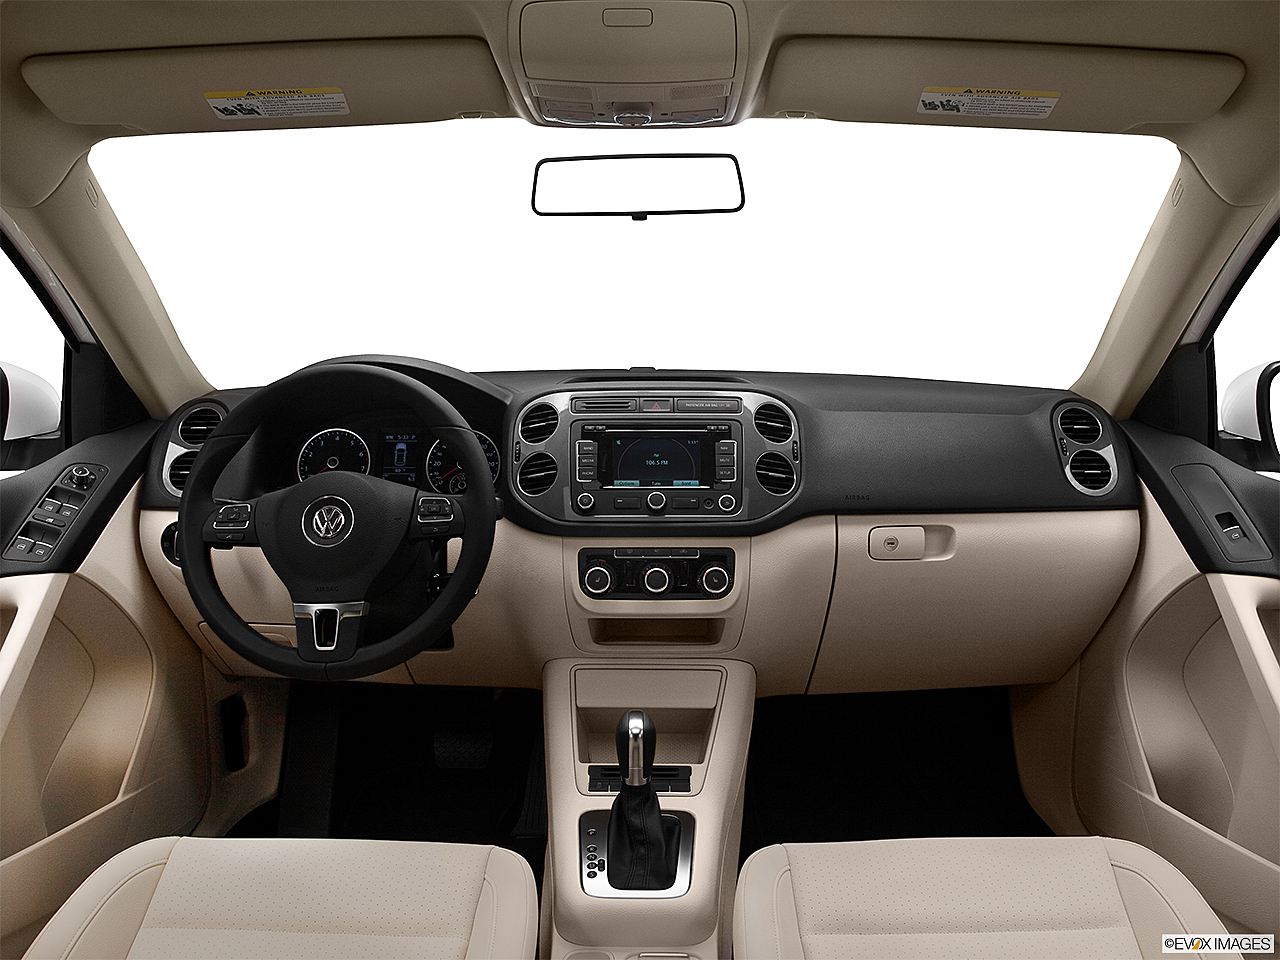 2012 Volkswagen Tiguan SE w/Sunroof and Nav, centered wide dash shot